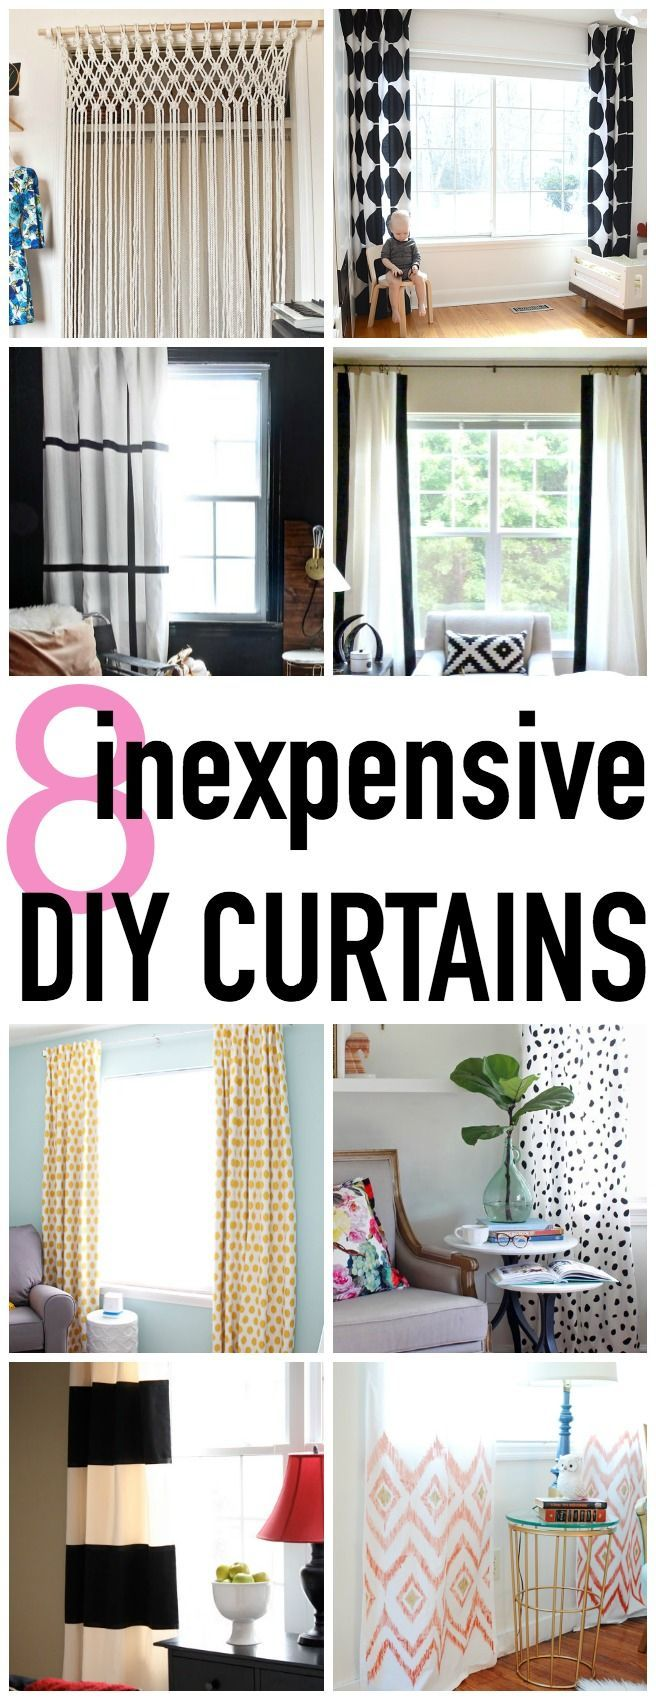 Decorating theme bedrooms maries manor window treatments curtains - Best 25 Curtains For Bedroom Ideas On Pinterest Curtains For Windows Window Curtains And Living Room Curtains